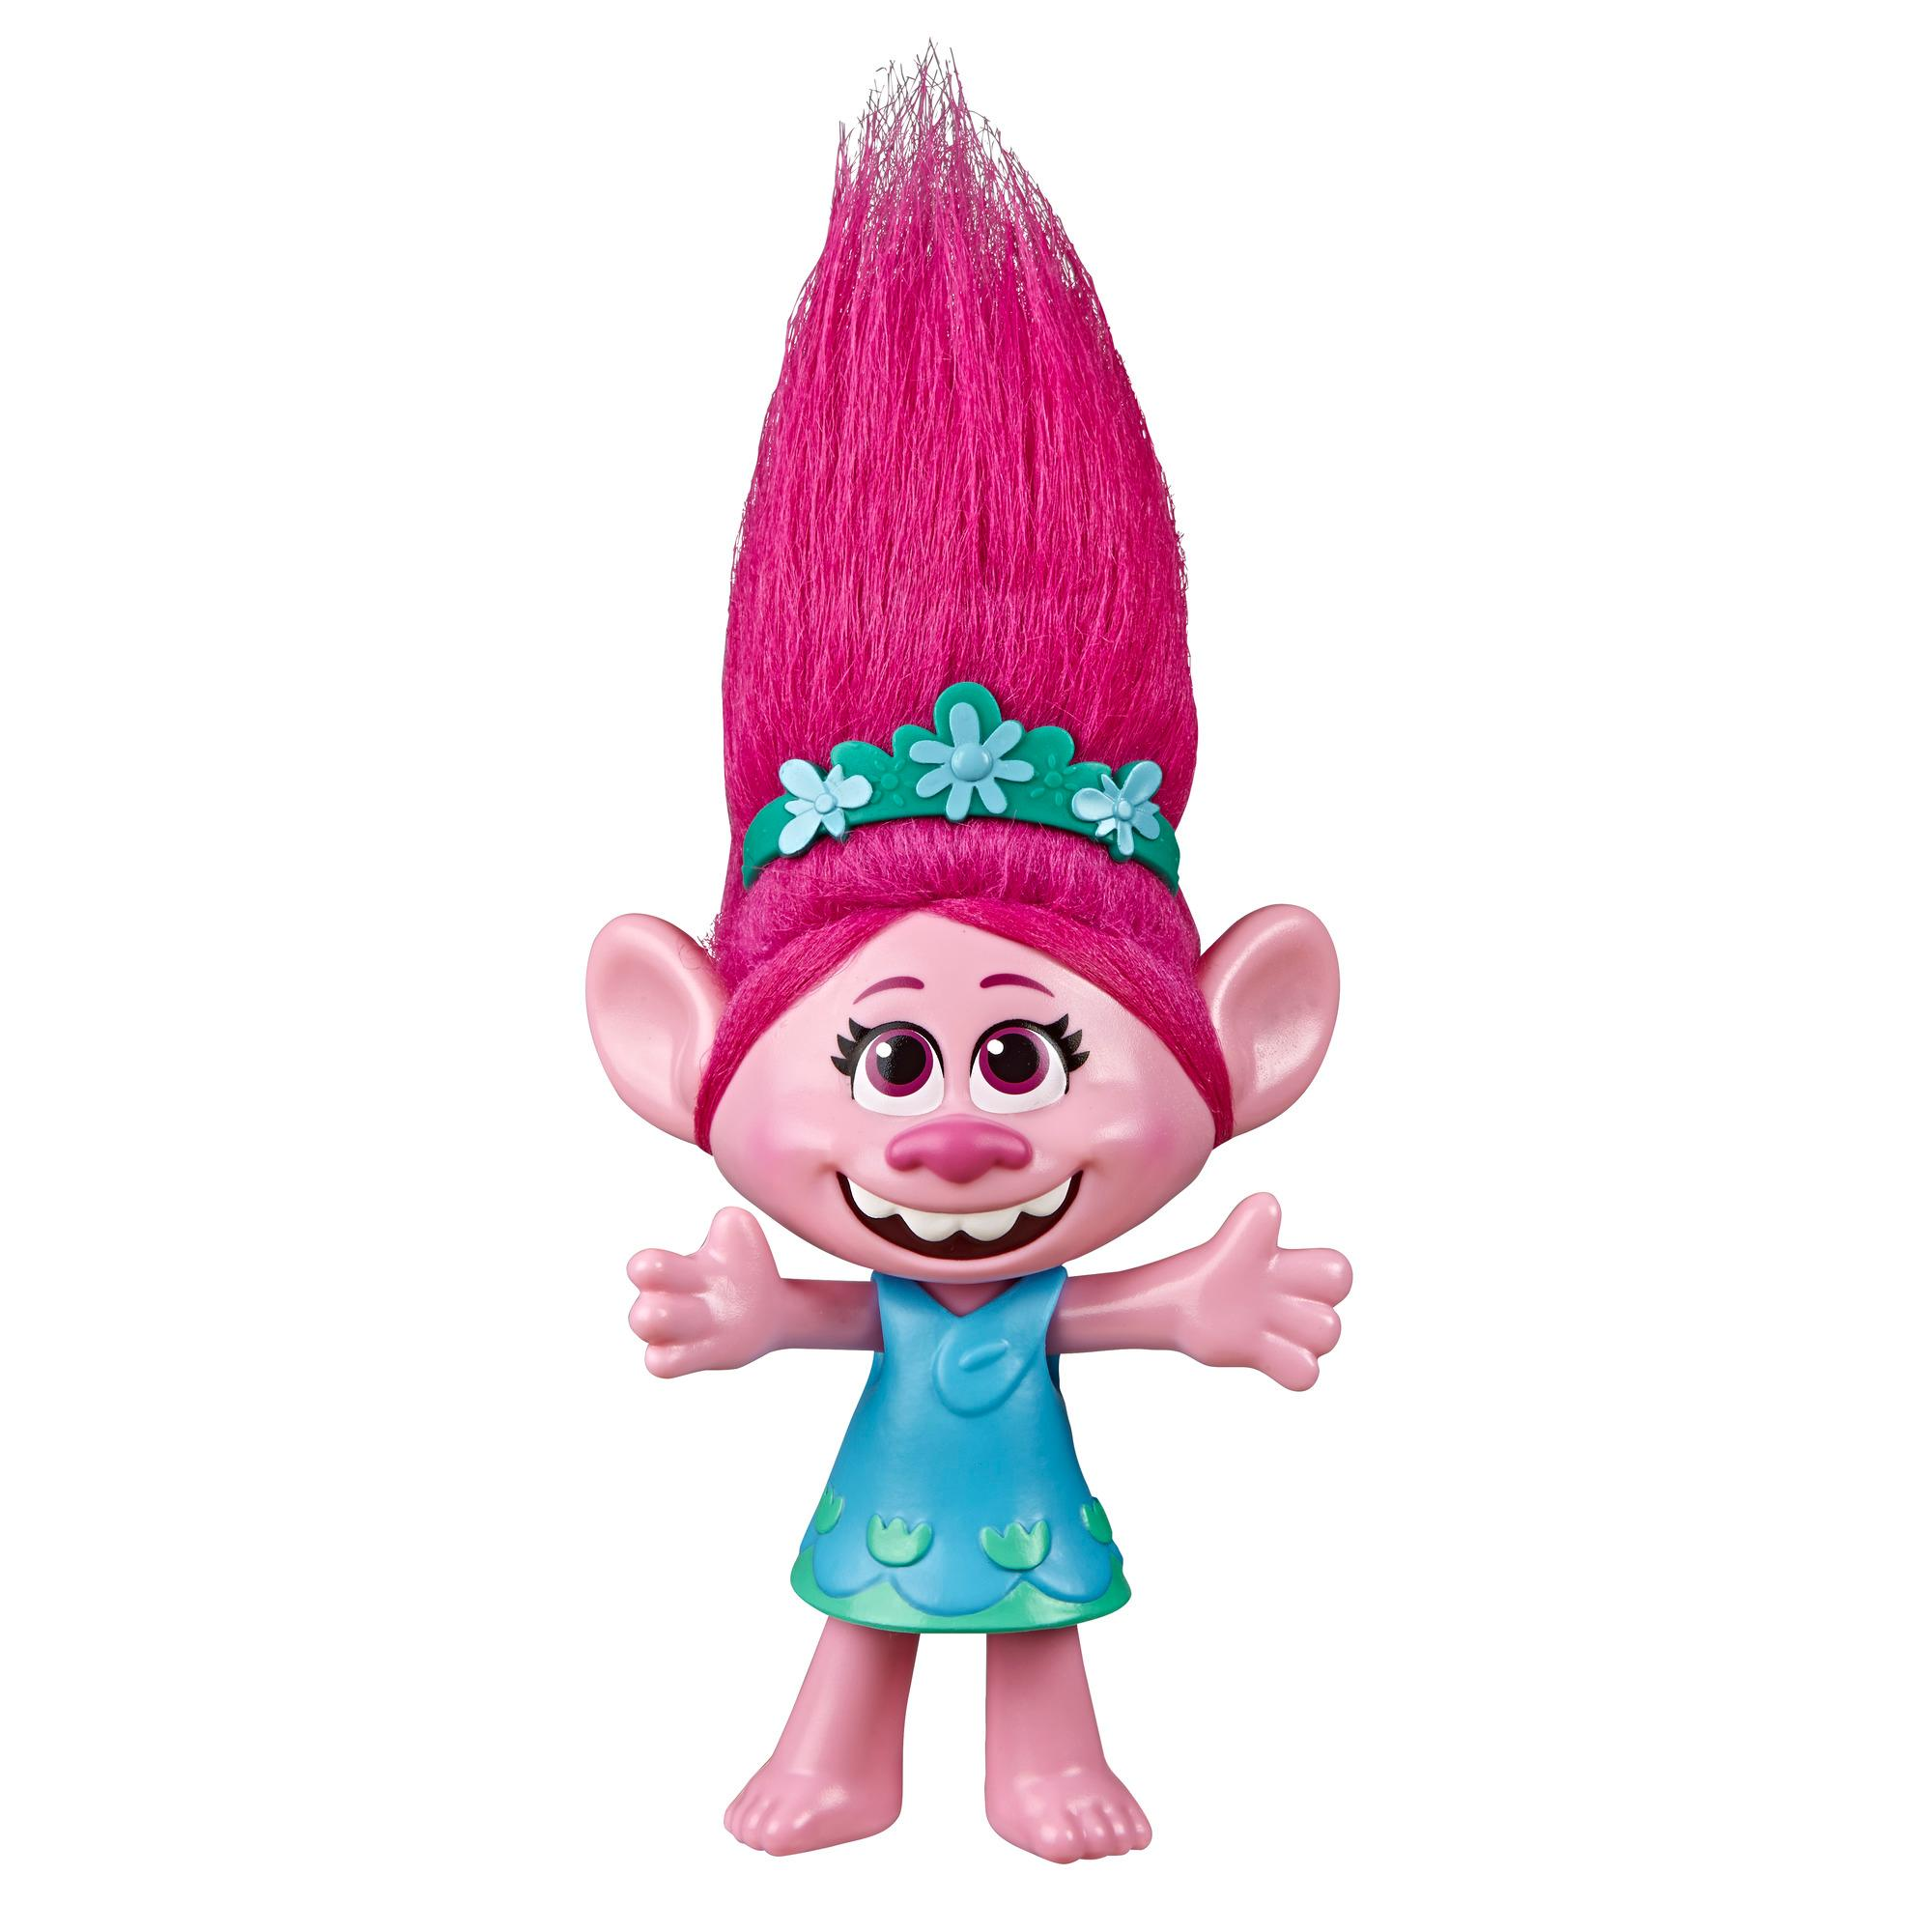 "Trolls da DreamWorks Poppy Cantora pop - Boneca, Fala e canta ""Trolls Just Want to Have Fun"" do filme Trolls World Tour"